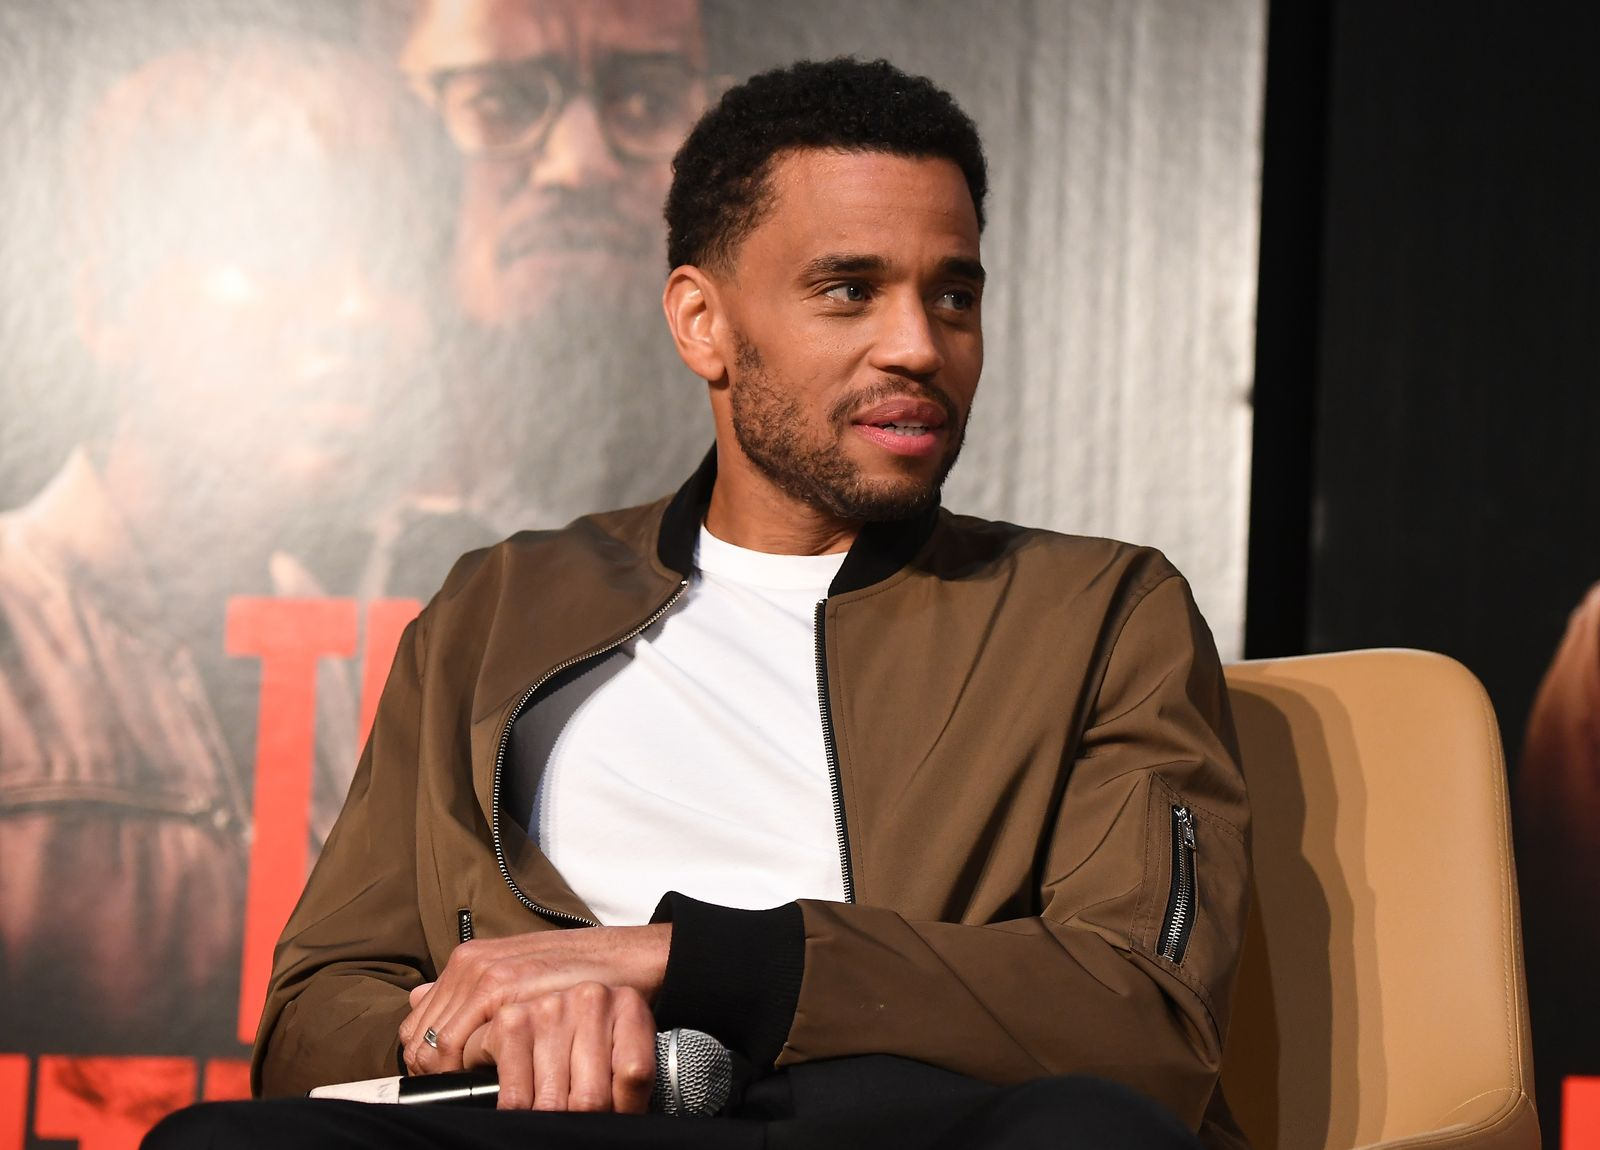 """Actor Michael Ealy onstage at """"The Intruder"""" Clark Atlanta University Spring Fest 2019 at Clark Atlanta University Student Center on April 23, 2019 